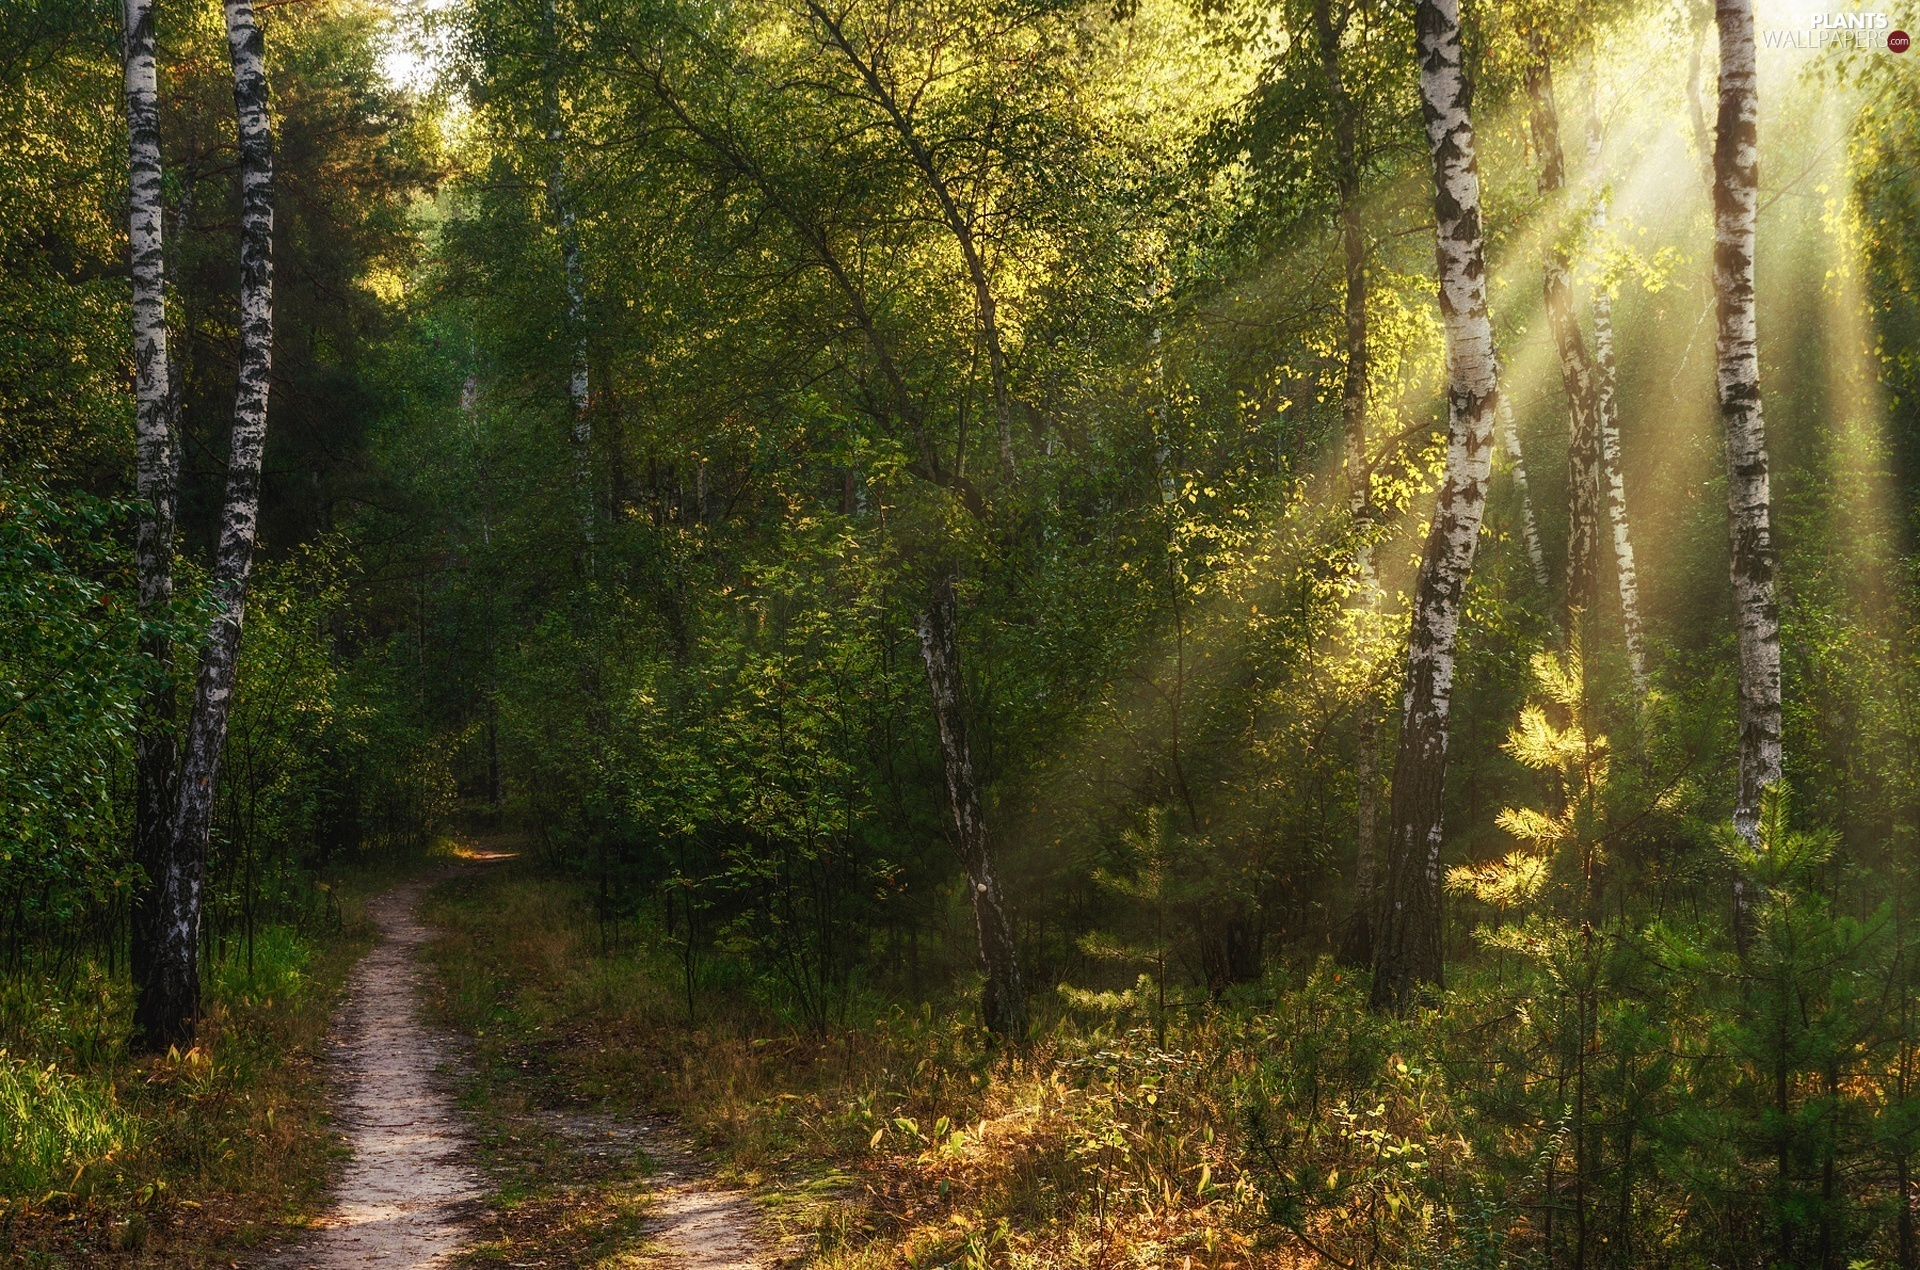 viewes, forest, Way, light breaking through sky, birch, trees